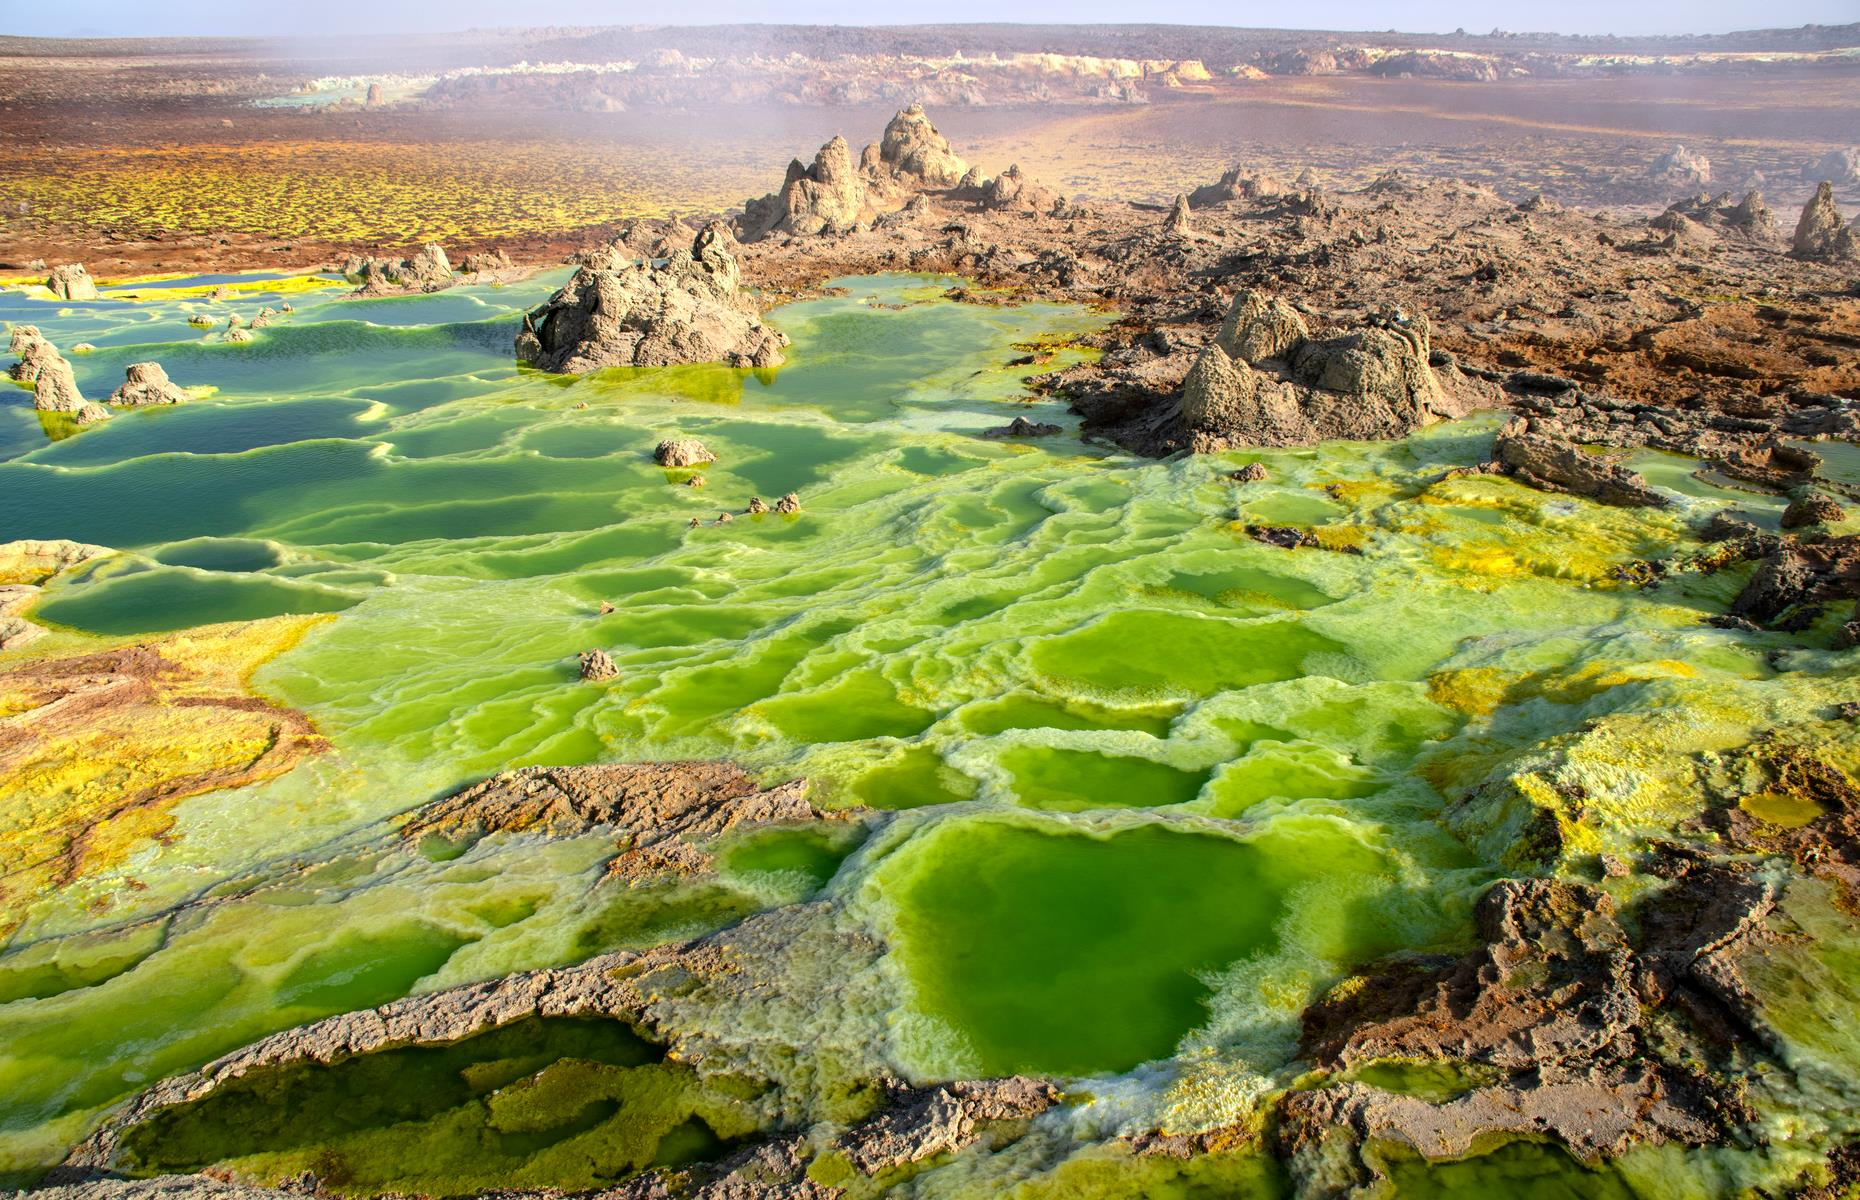 Slide 24 of 41: Ethiopia's answer to Yellowstone's Grand Prismatic Spring, Dallol volcano sits in the far northern reaches of the country. The geothermal area is a green and yellow land of sulfur ponds, geysers and salt plains, with the volcano itself only springing up in 1926. This pocket of Ethiopia is notably one of the lowest places on the planet too.